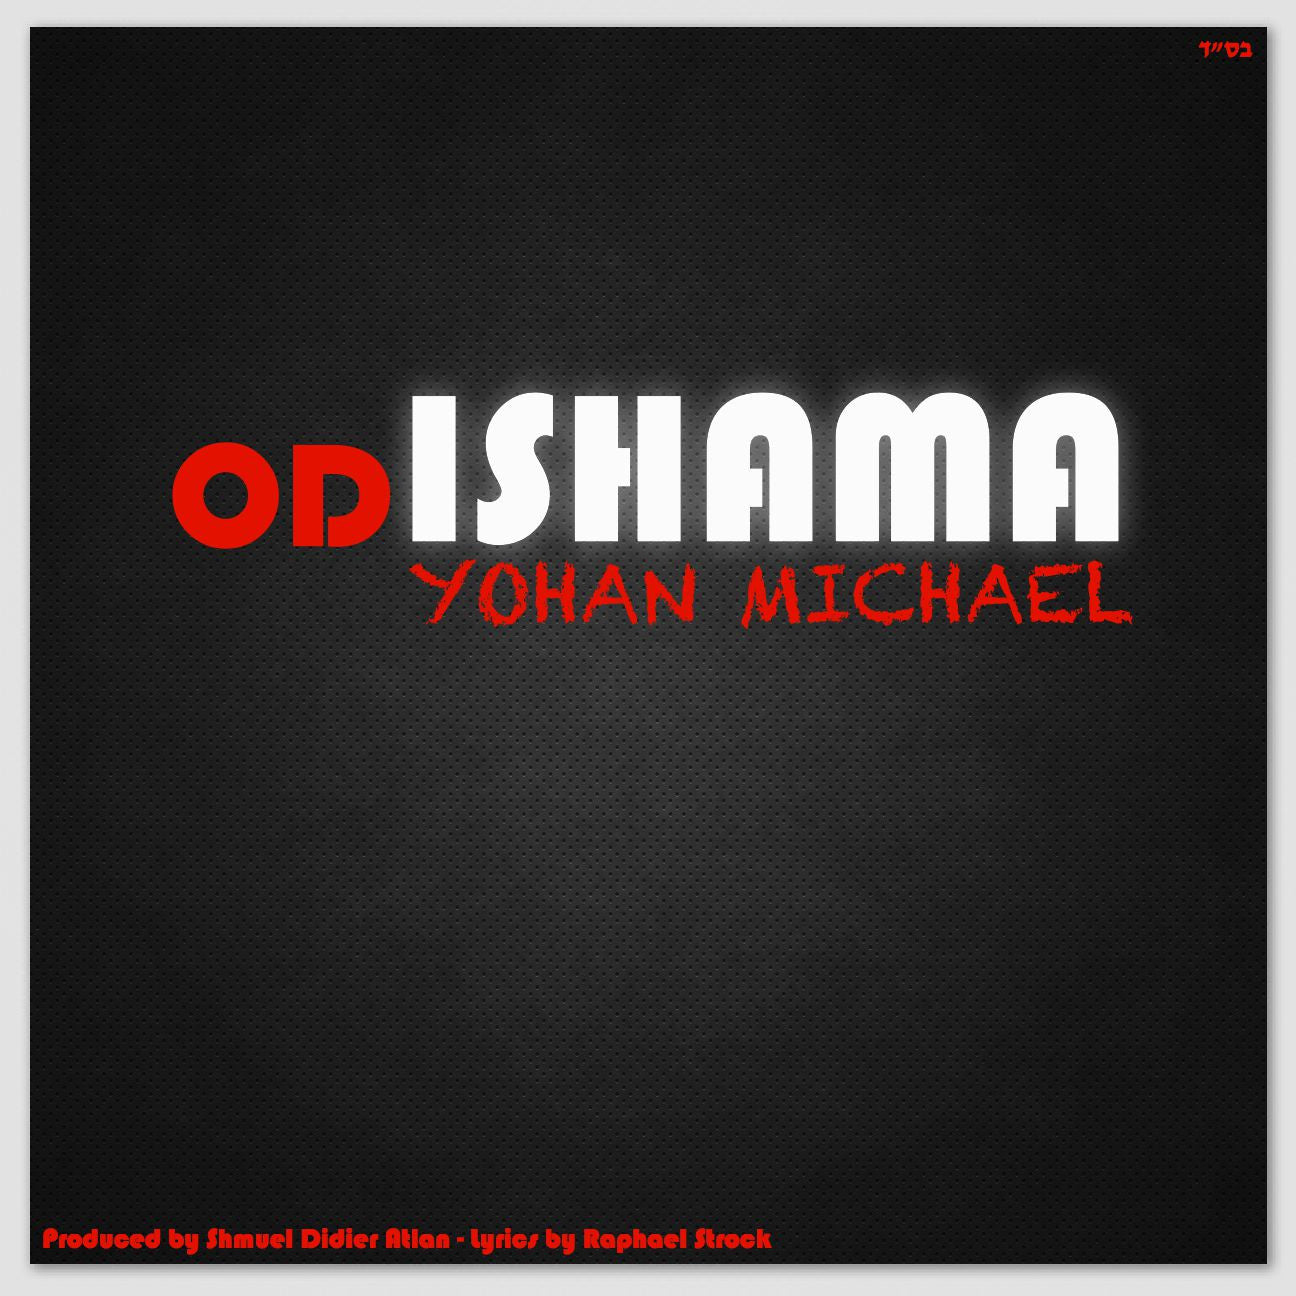 Yohan Michael - Od Yishama (Single)